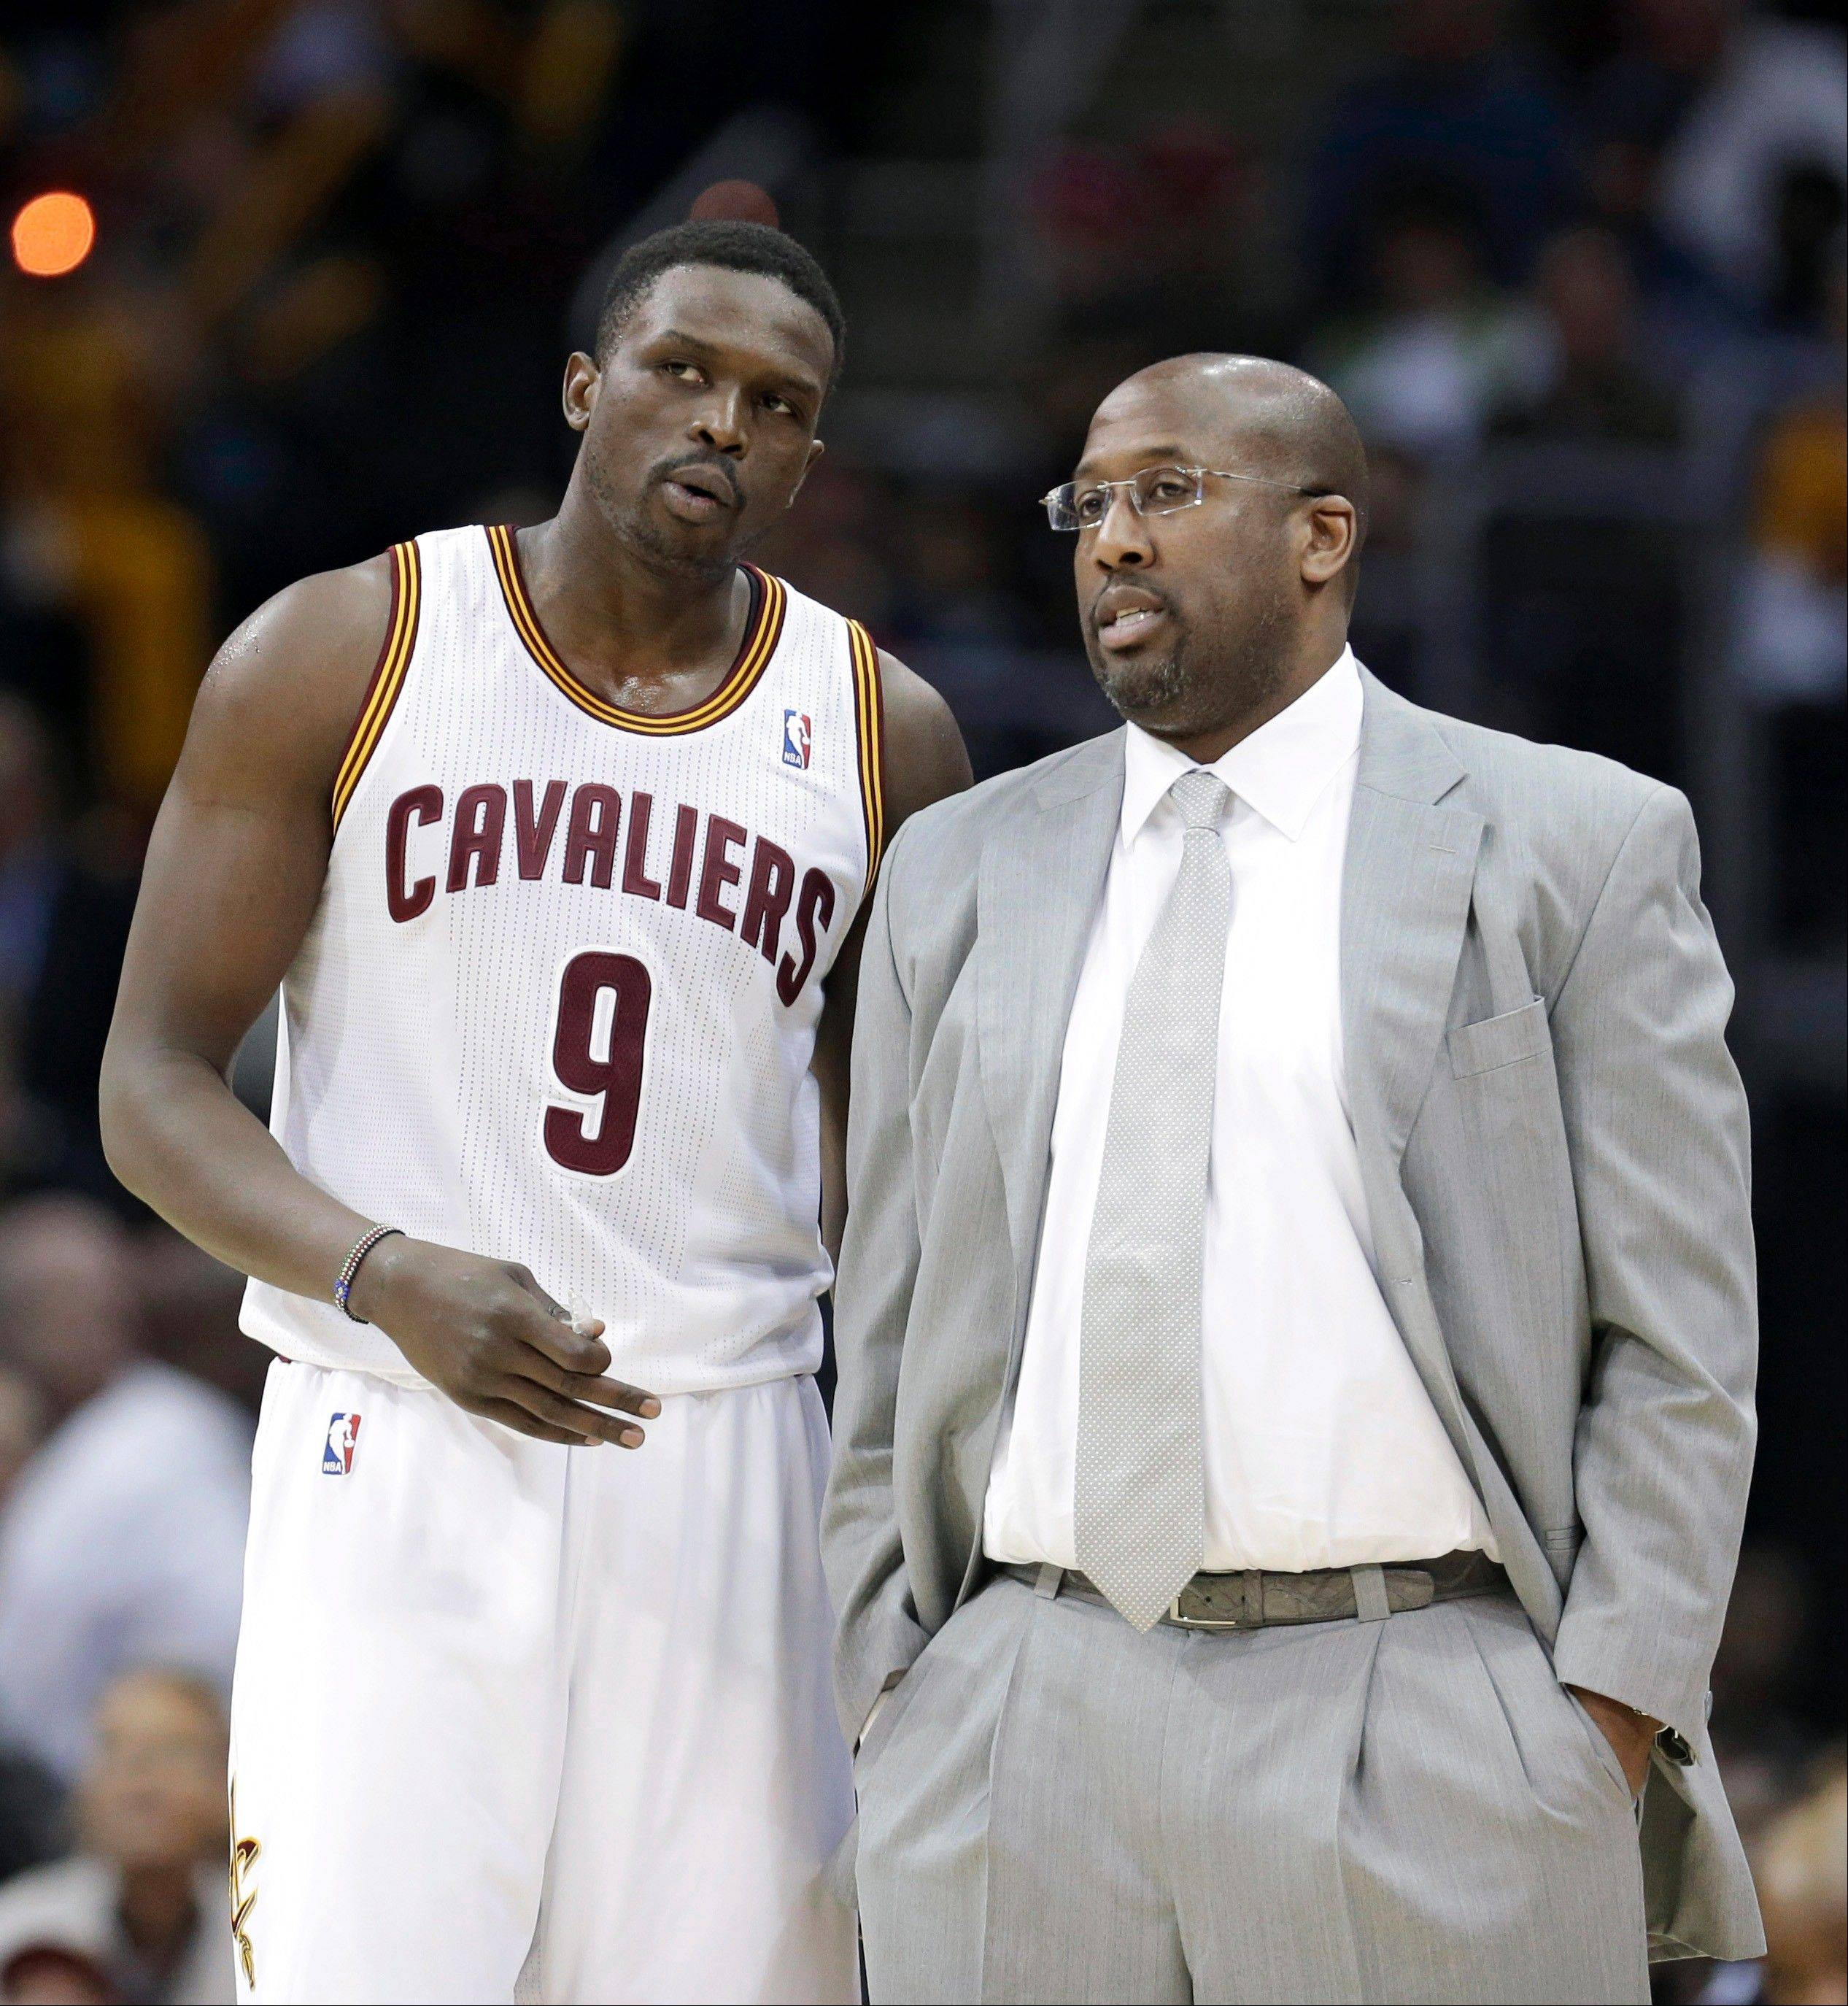 Cleveland Cavaliers head coach Mike Brown, right, talks with Luol Deng during the third quarter of an NBA basketball game, Monday, Jan. 20, 2014, in Cleveland. Dallas defeated Cleveland 102-97.